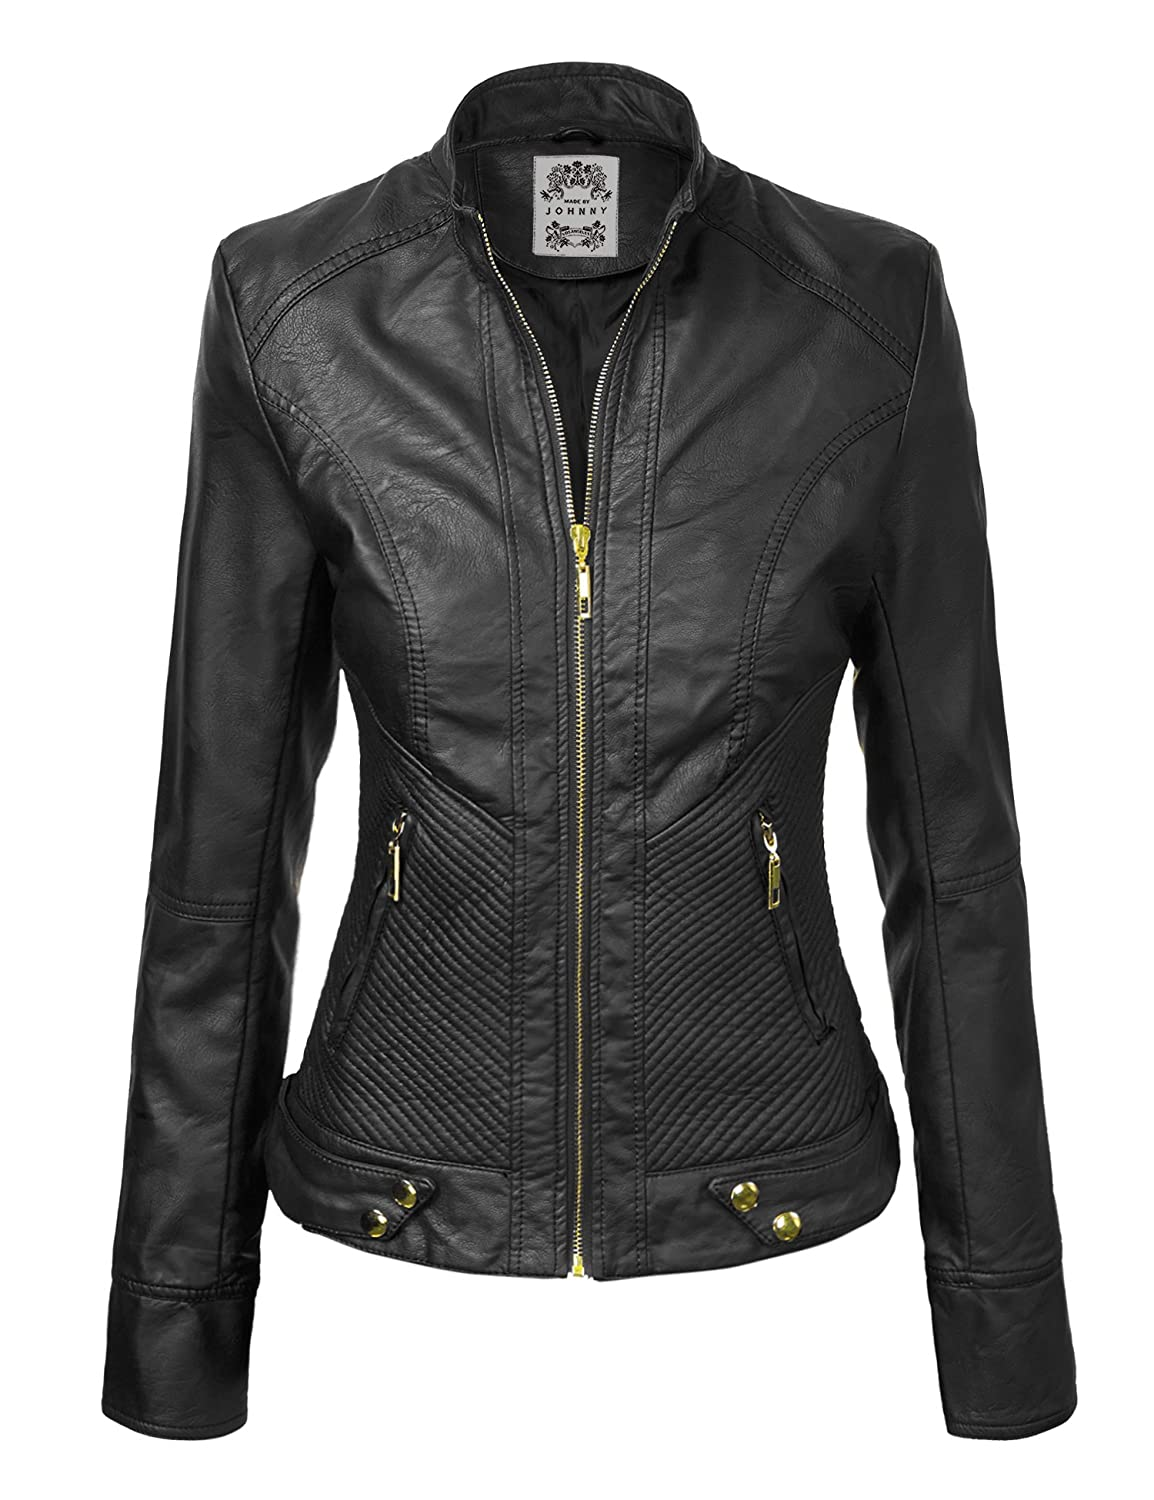 WJC747 Womens Dressy Vegan Leather Biker Jacket L BLACK MBJWJC217_WJC747-BLACK-L